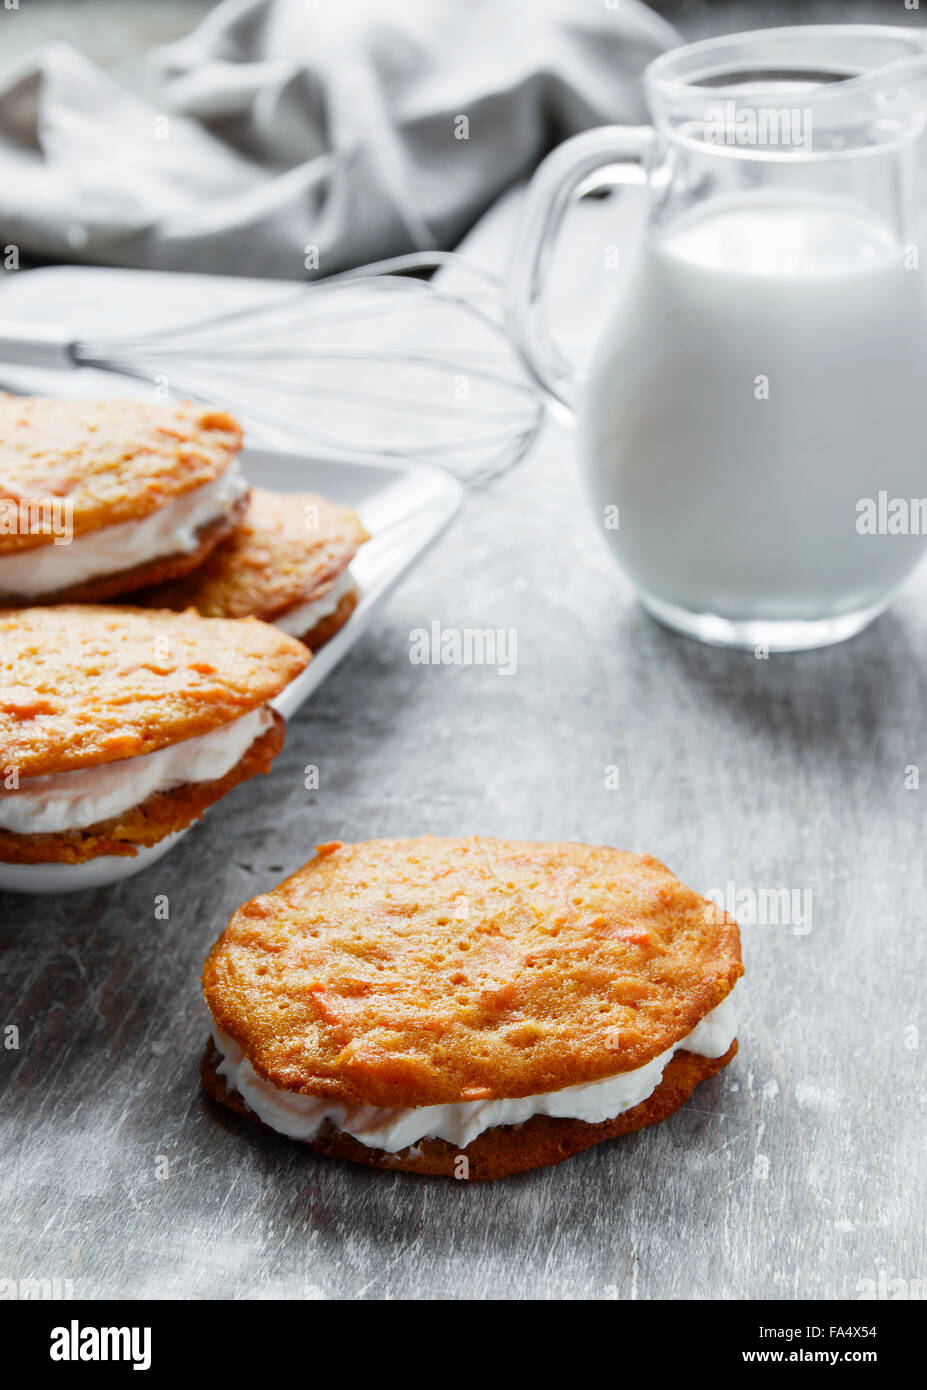 cream filled carrot cake cookies sandwich - Stock Image